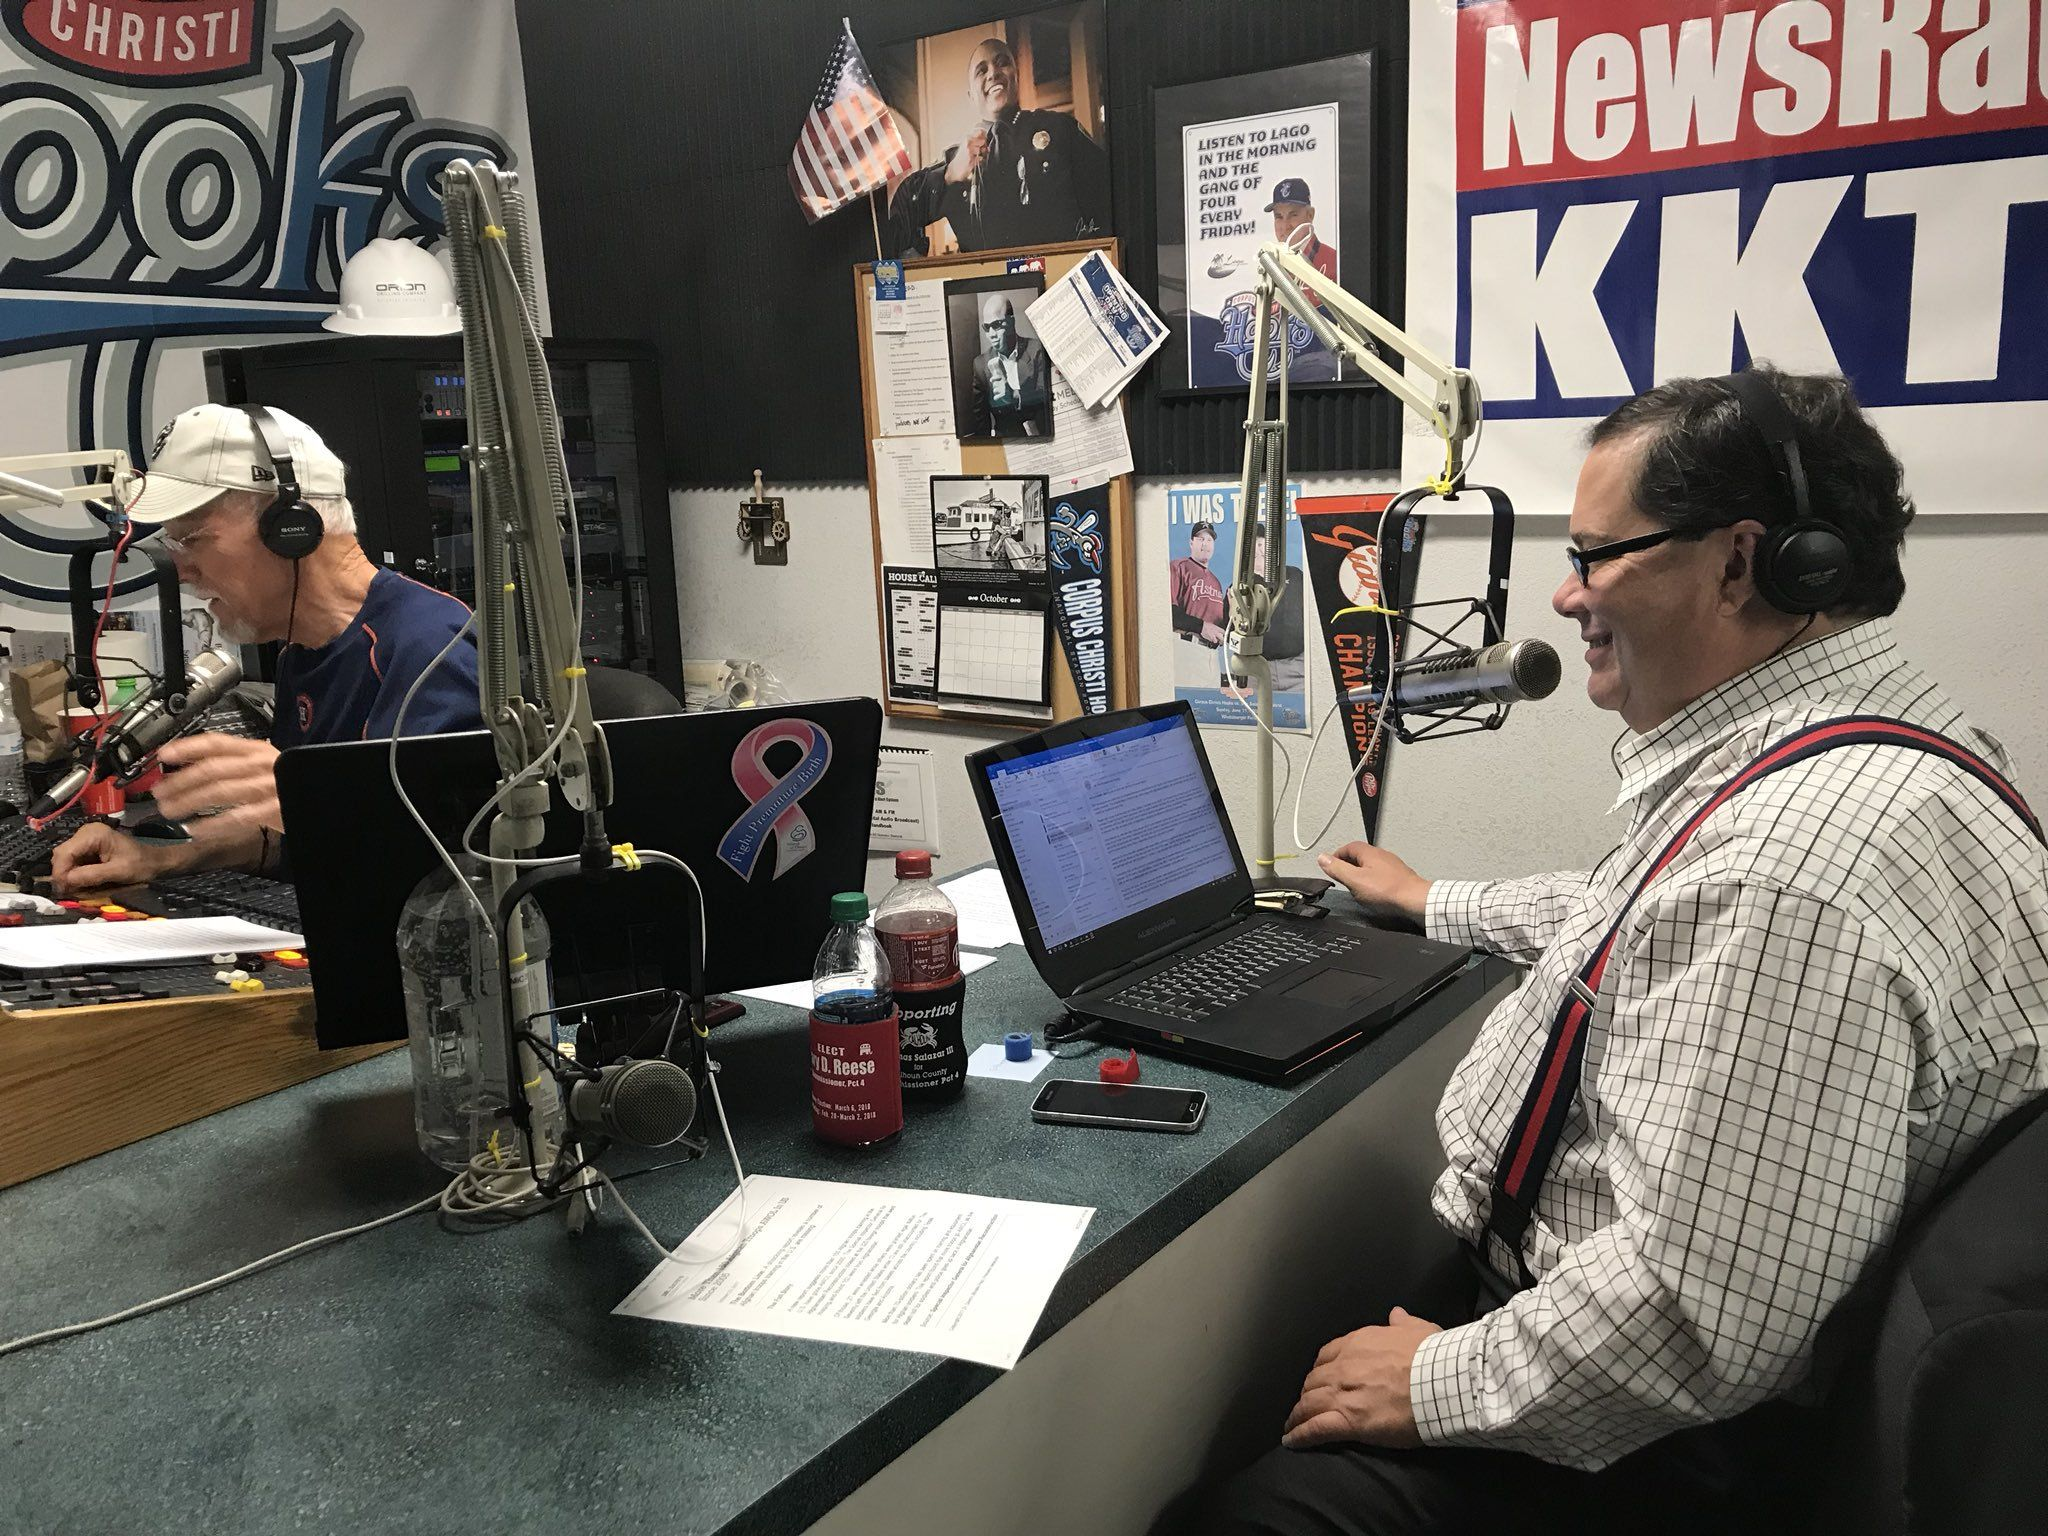 Blake Farenthold giving interview on radio